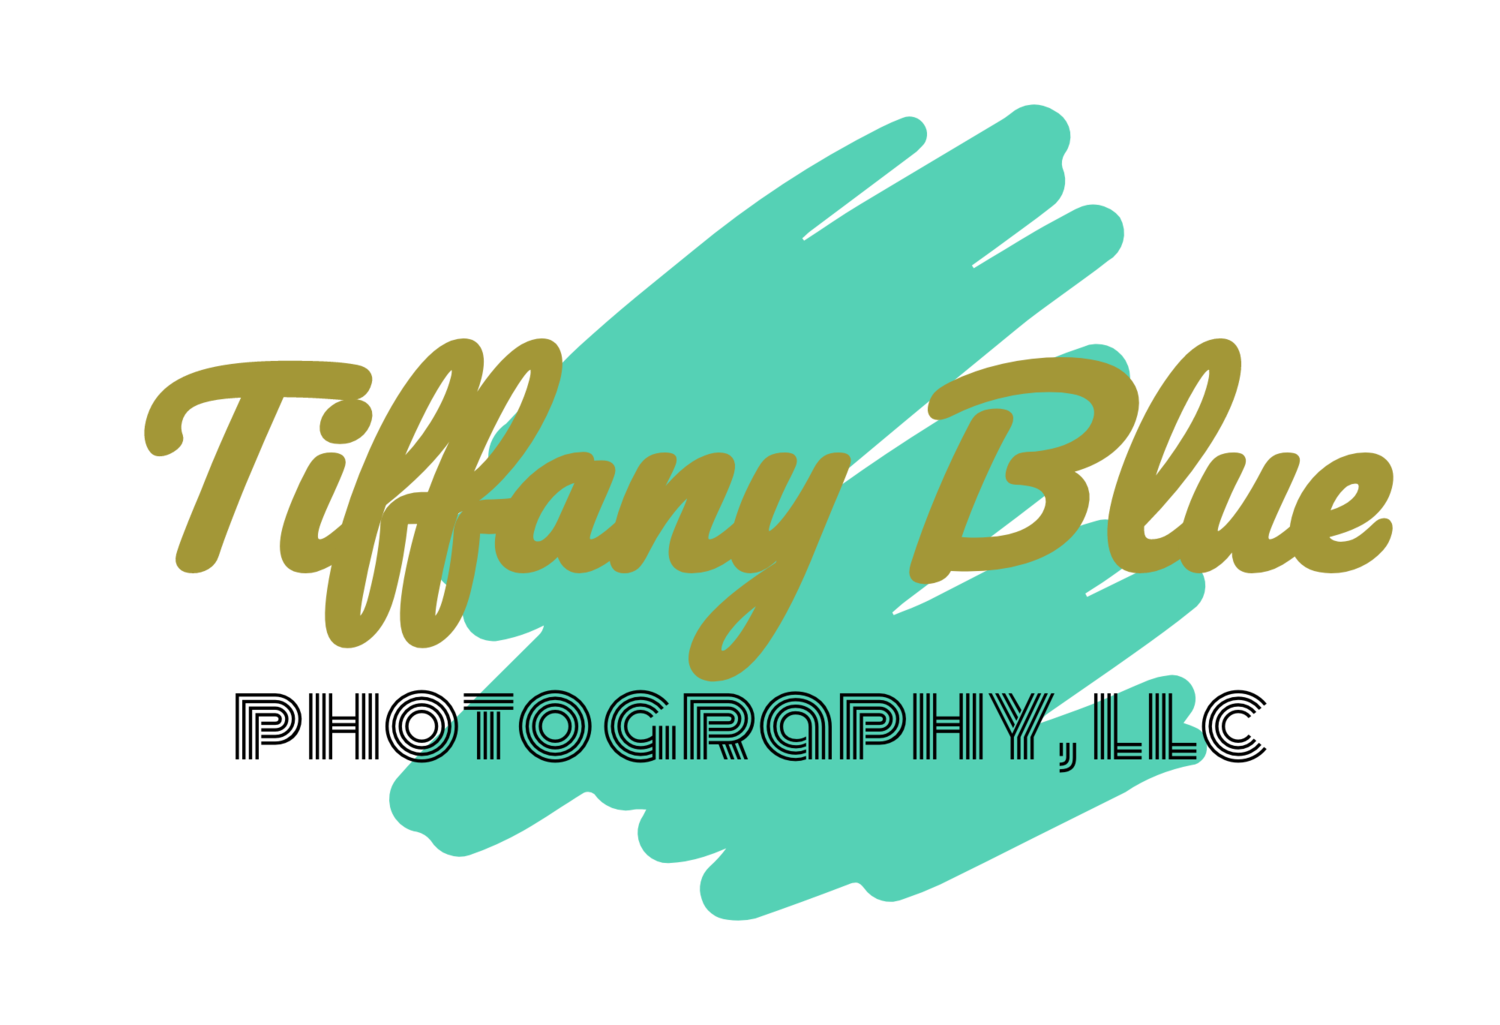 Tiffany Blue Photography